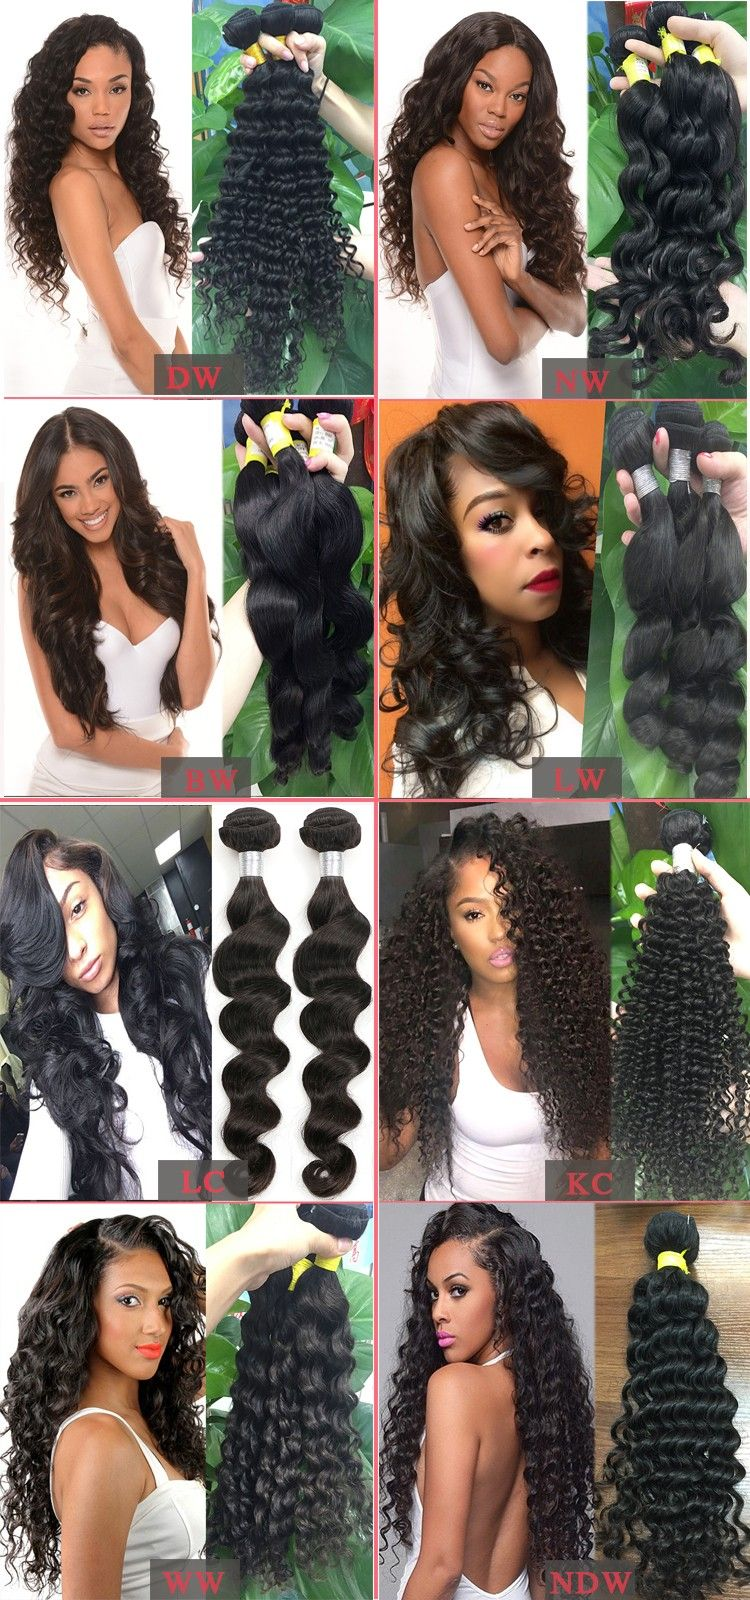 Wholesale cheap ombre hair extension bundles virgin hair